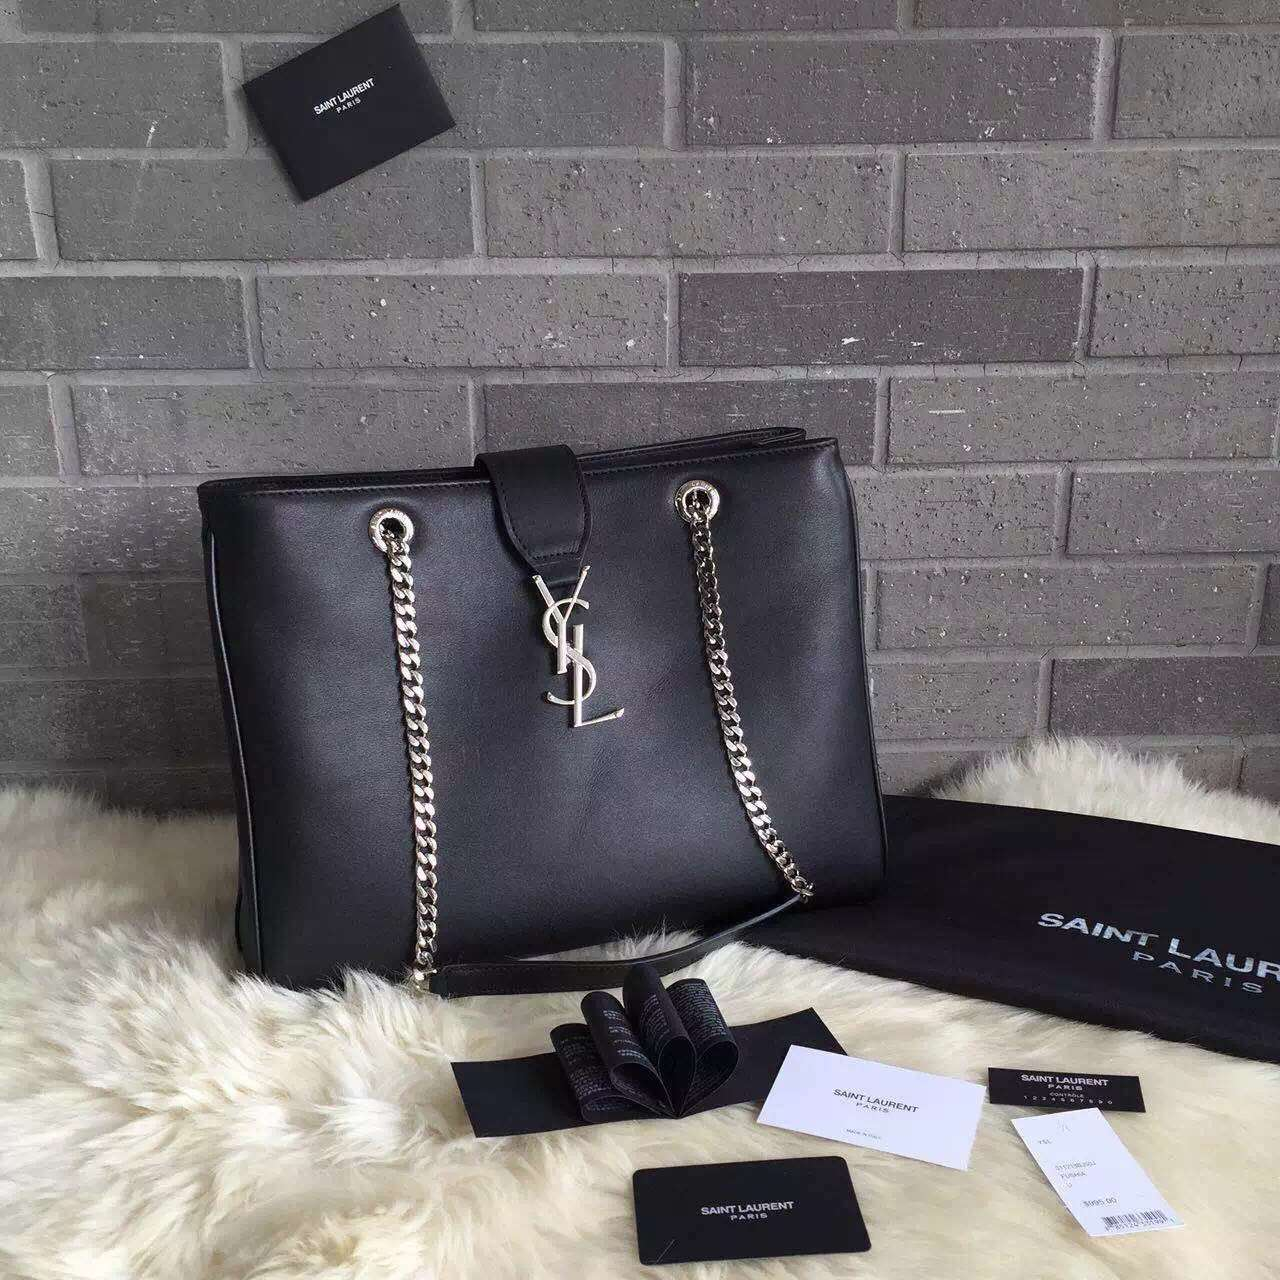 2015 New Saint Laurent Bag Cheap Sale-Saint Laurent Classic Monogram  Shopping Bag in Black 7f9c4bde9e908